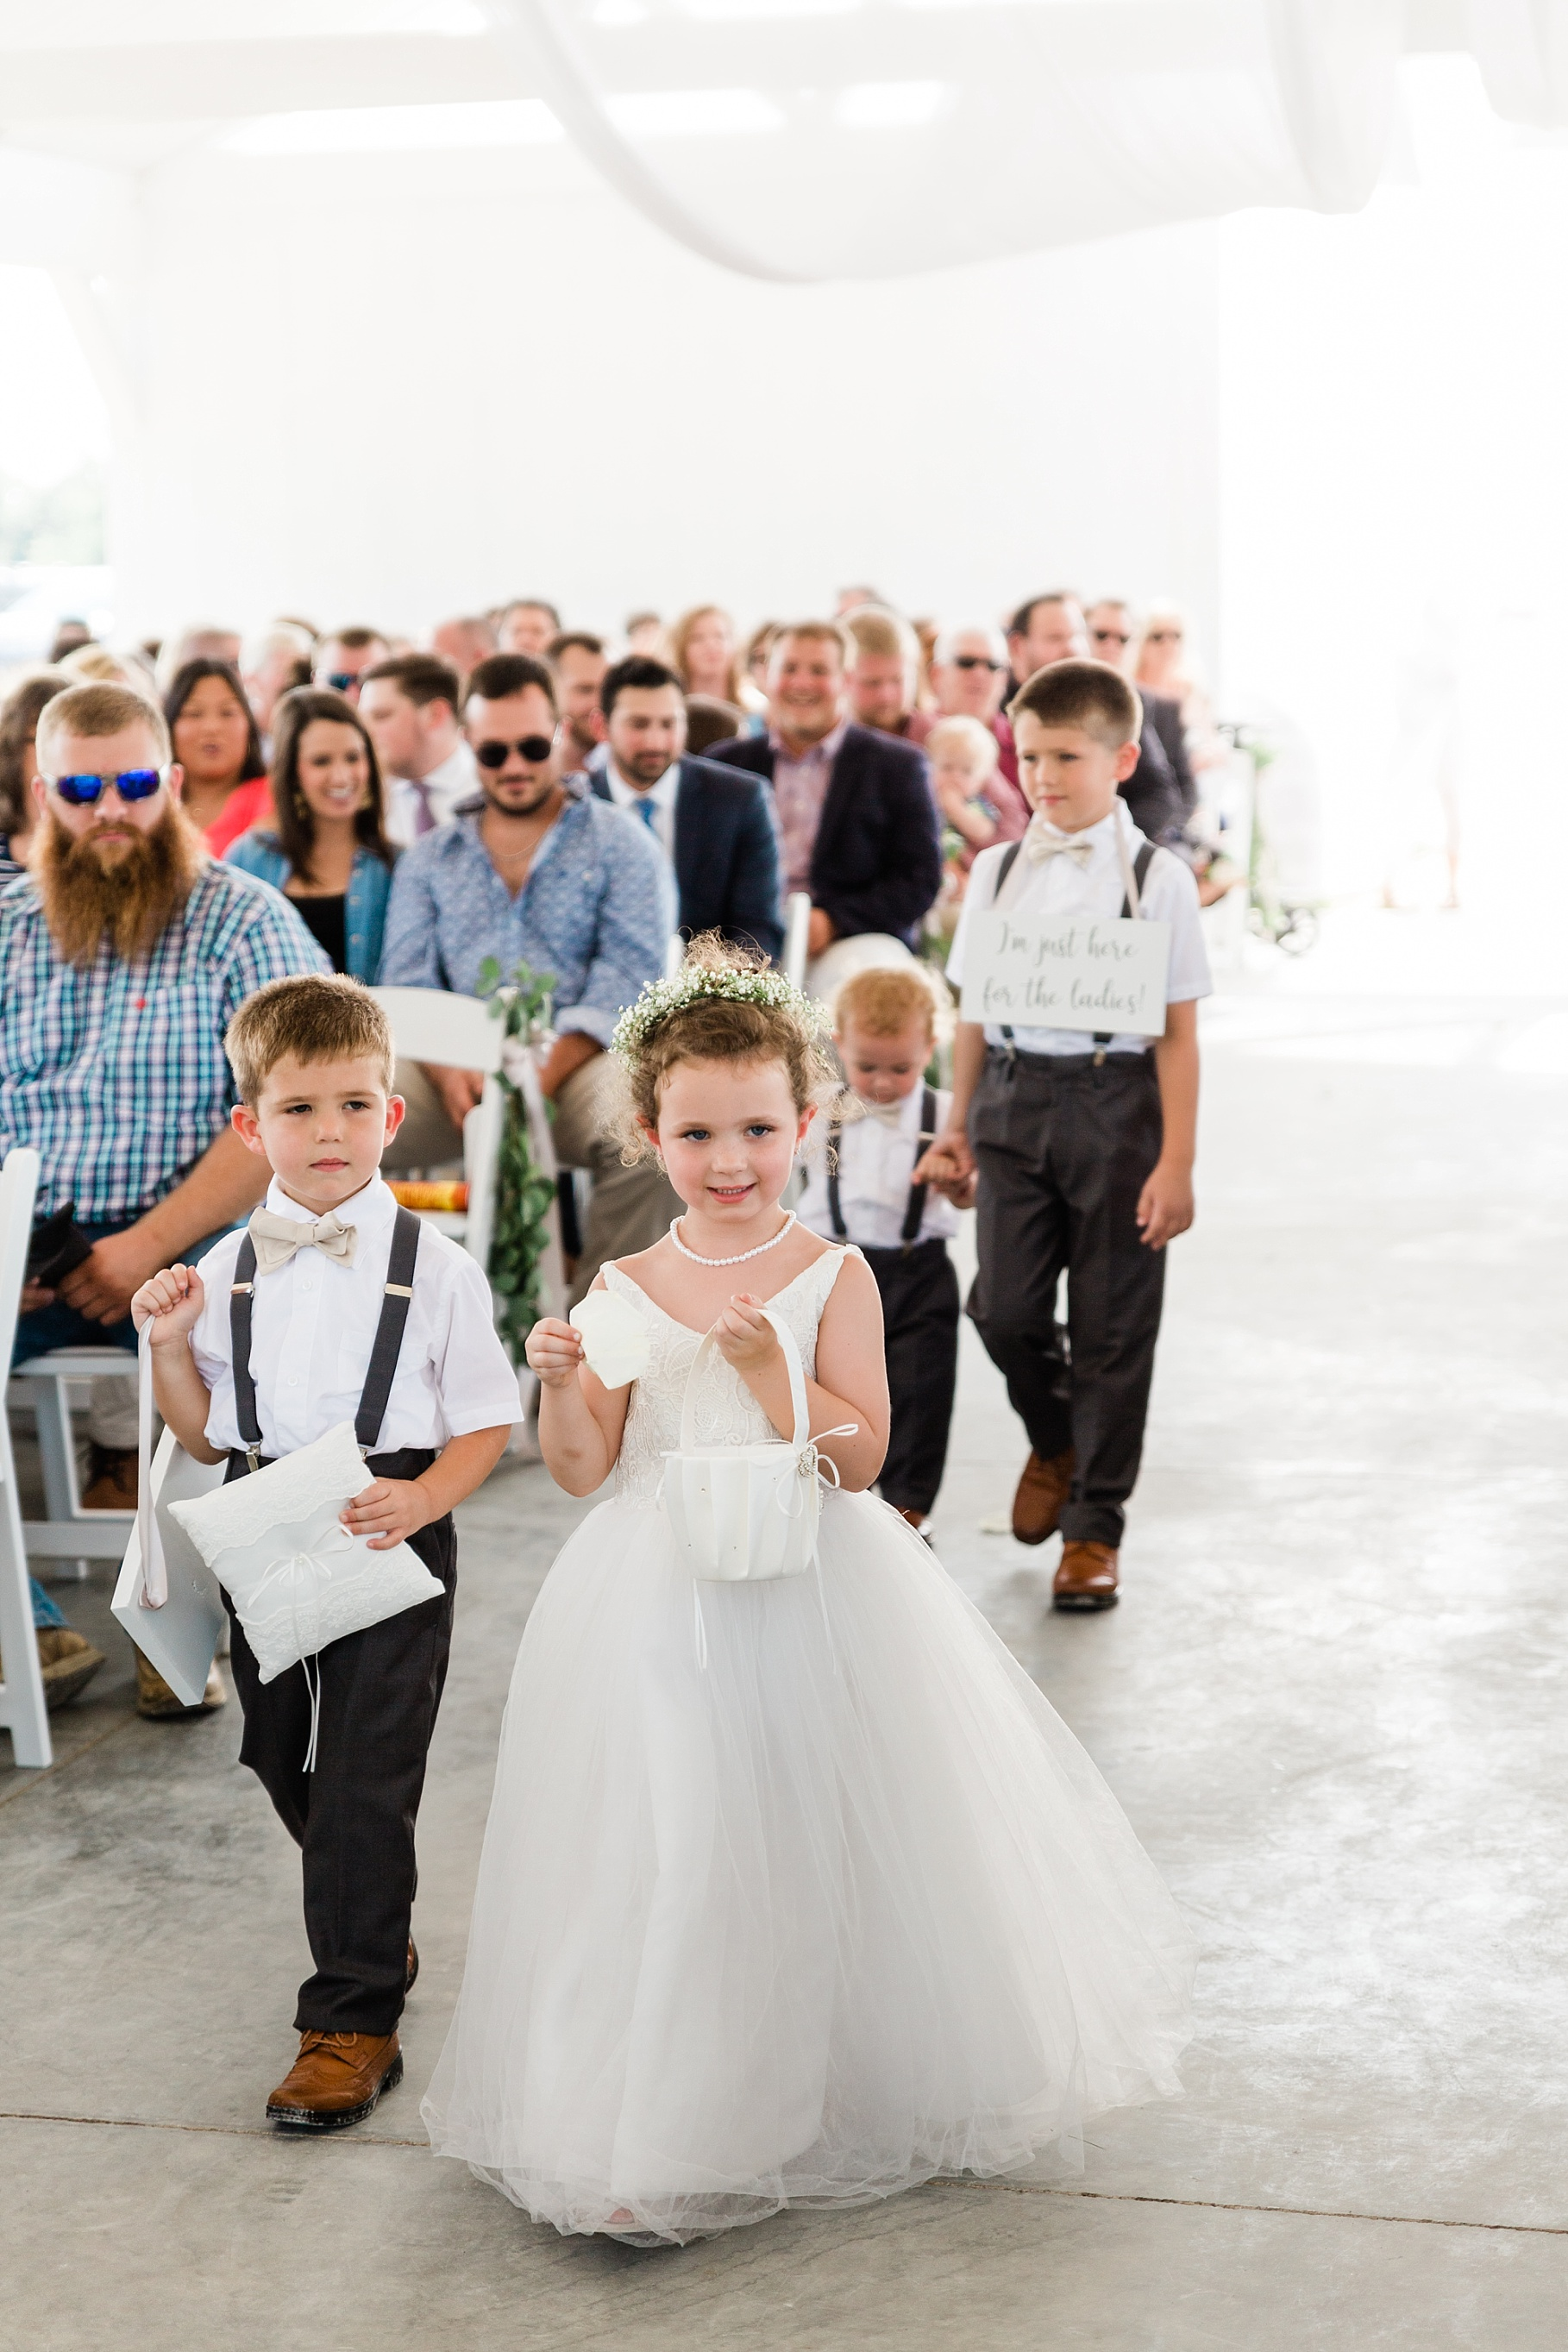 Wedding Ceremony with Confetti Pop at Emerson Fields Venue by Associate Wedding Photographer for Kelsi Kliethermes Photography Best Columbia Missouri and Maui Hawaii Wedding Photographer_0049.jpg